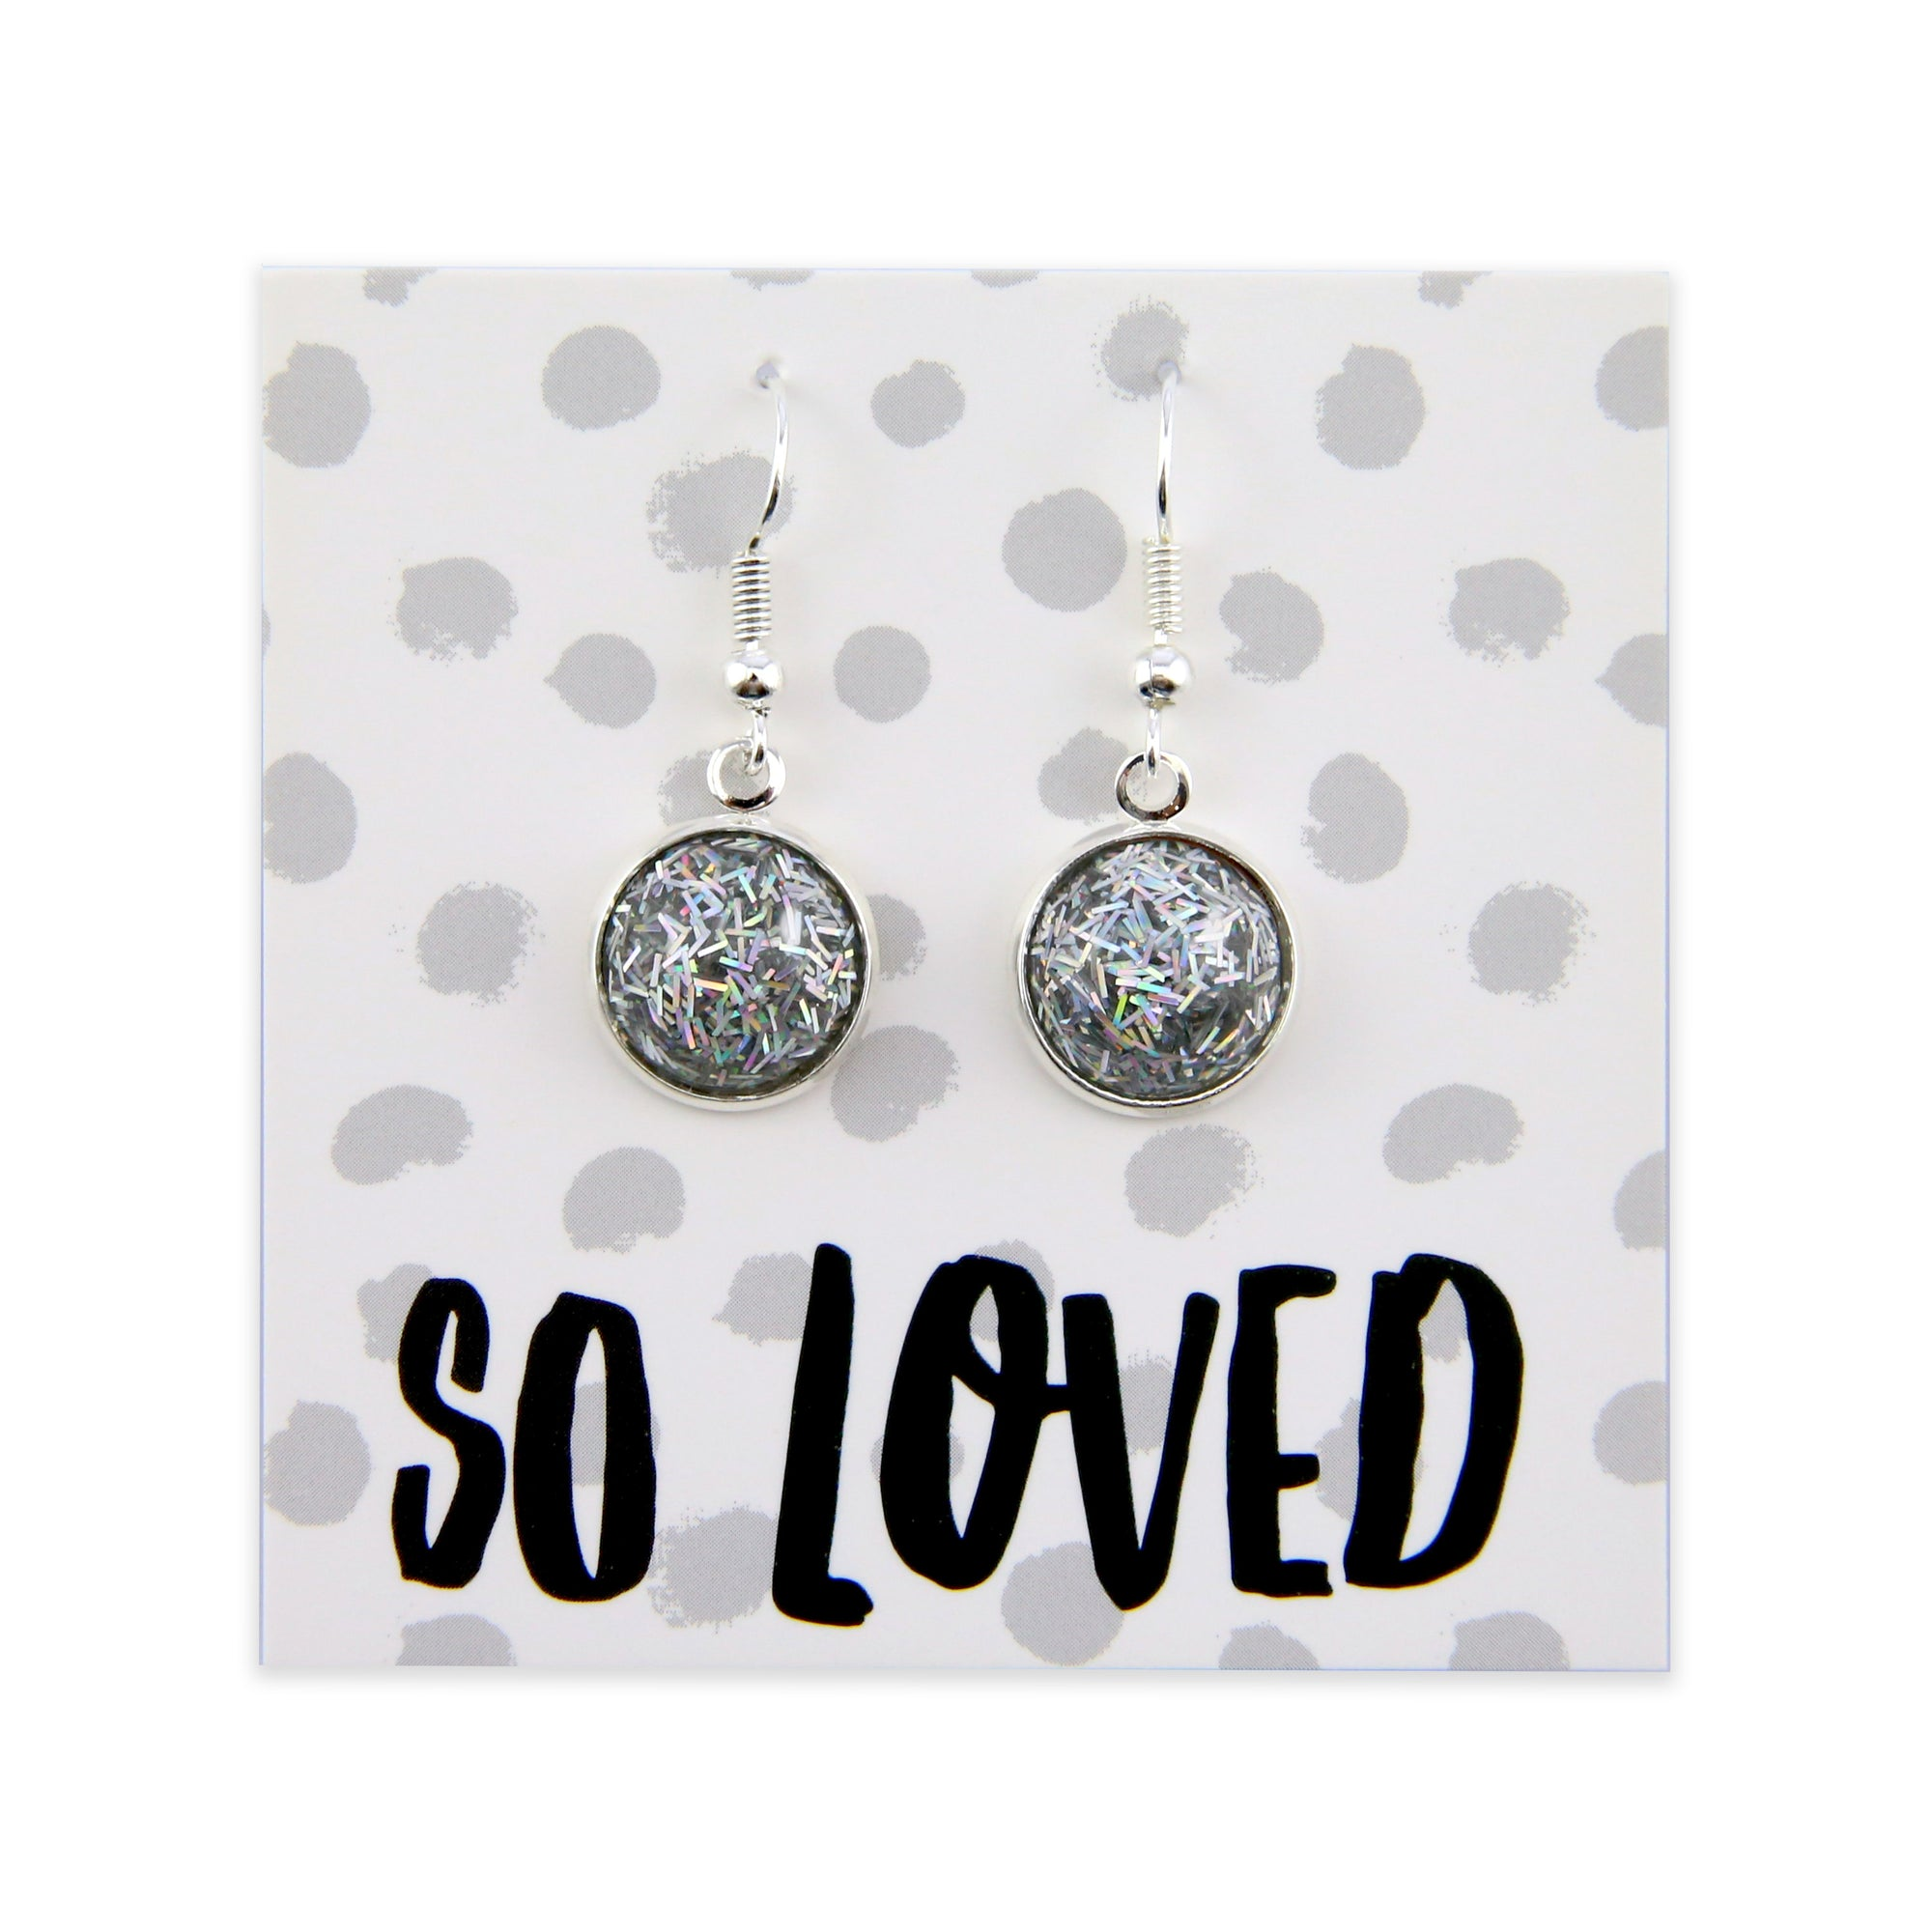 SPARKLEFEST Dangles - So Loved - Stainless Steel Silver Earrings - Poppin Silver Glitter (8507)